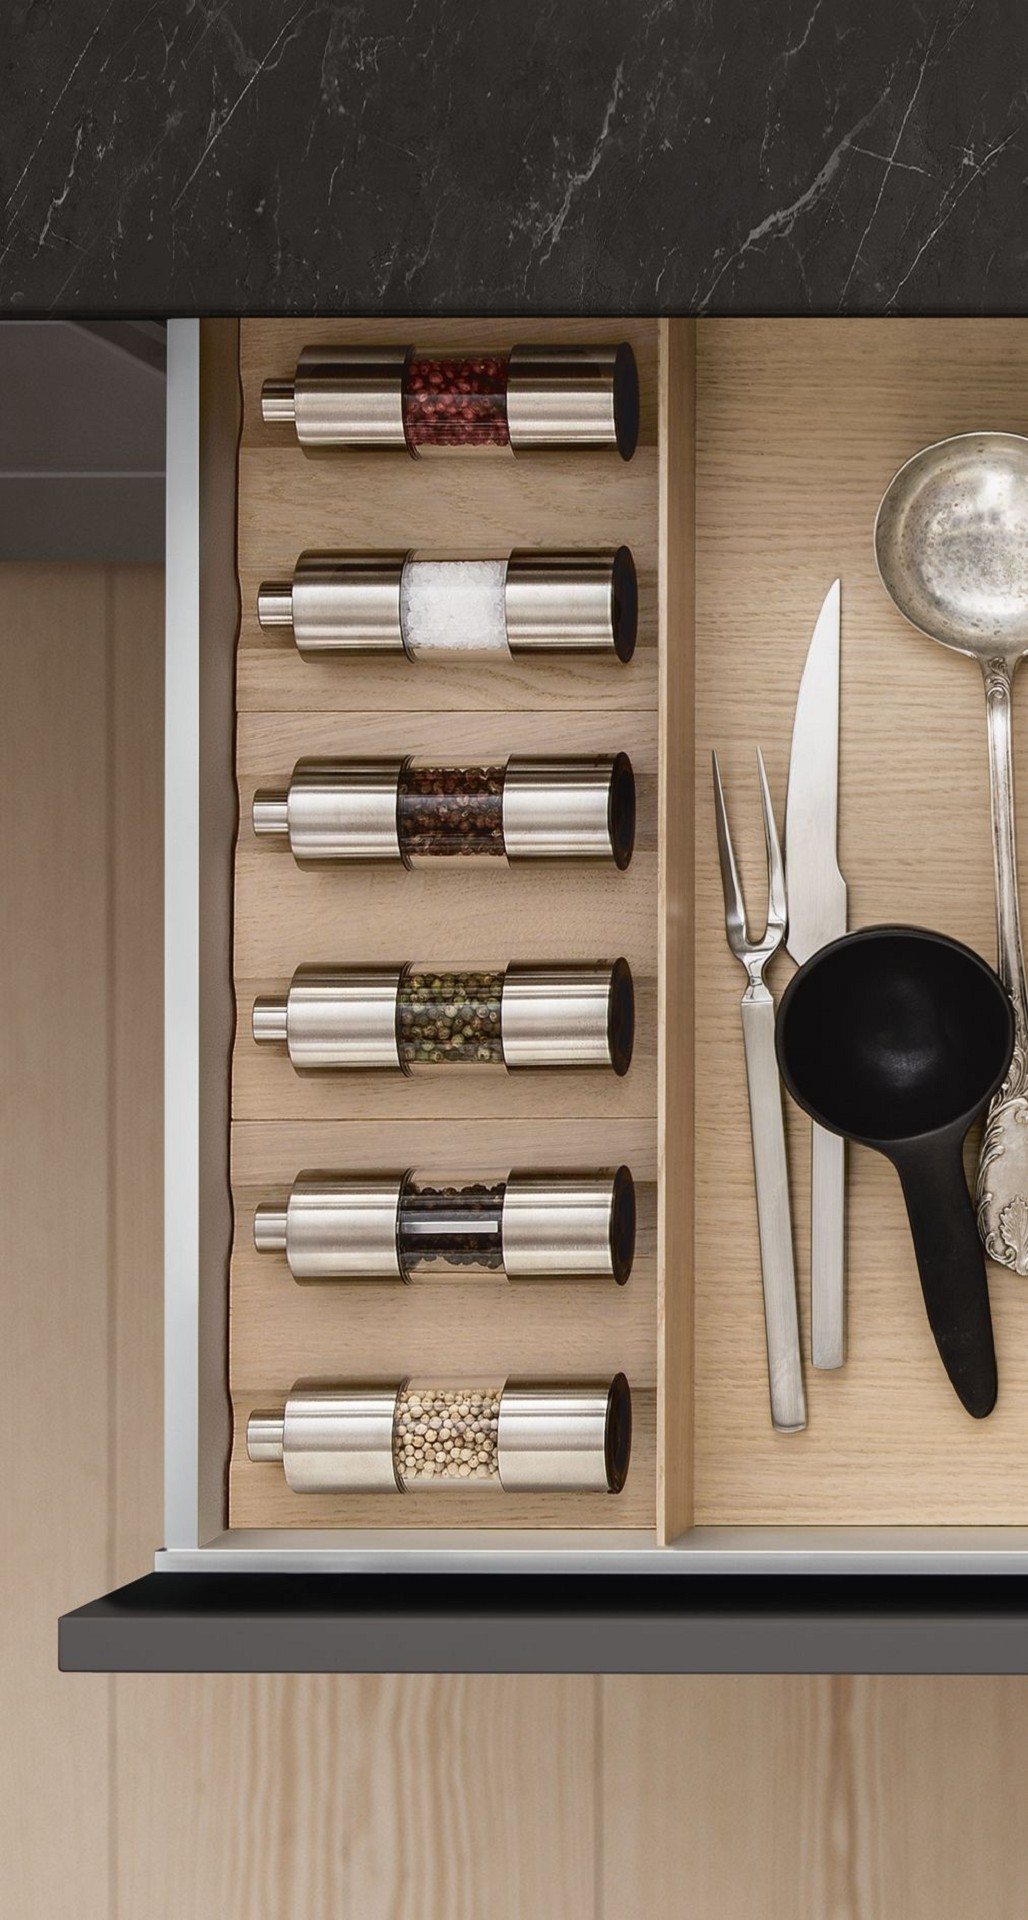 Spice mills from the SieMatic Wooden Interior Accessories System